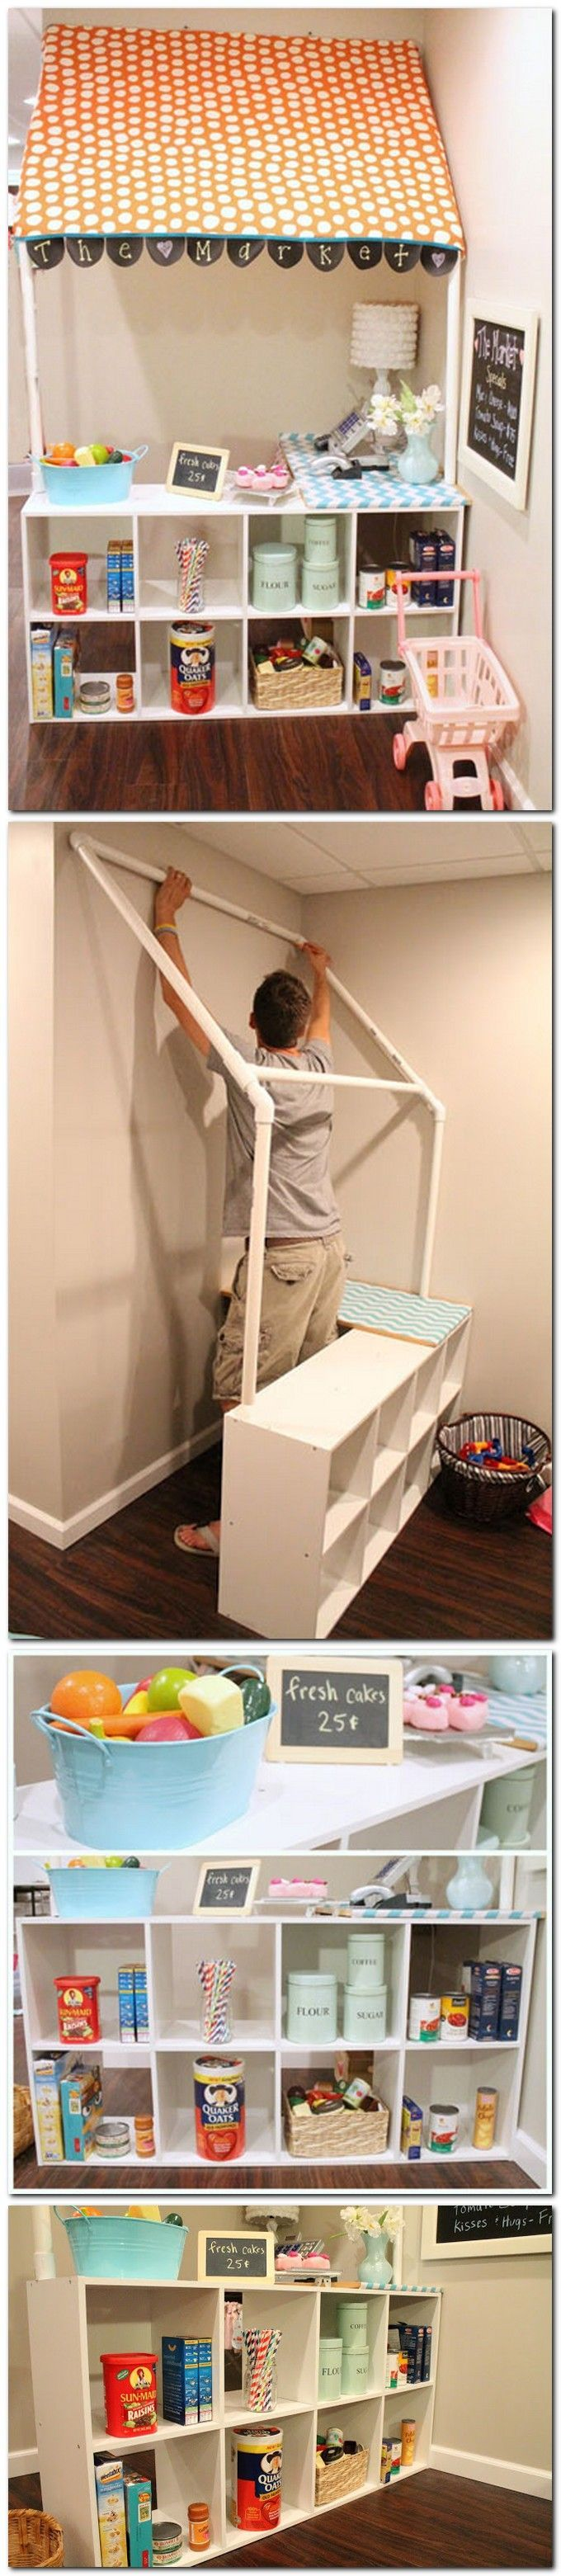 DIY children's grocery store--such a fun idea for a basement or playroom - My-House-My-Home. @Jess Pearl Pearl Pearl Pearl Pearl Pearl Pearl Pearl Pearl Pearl Pearl Liu Law for your store project!